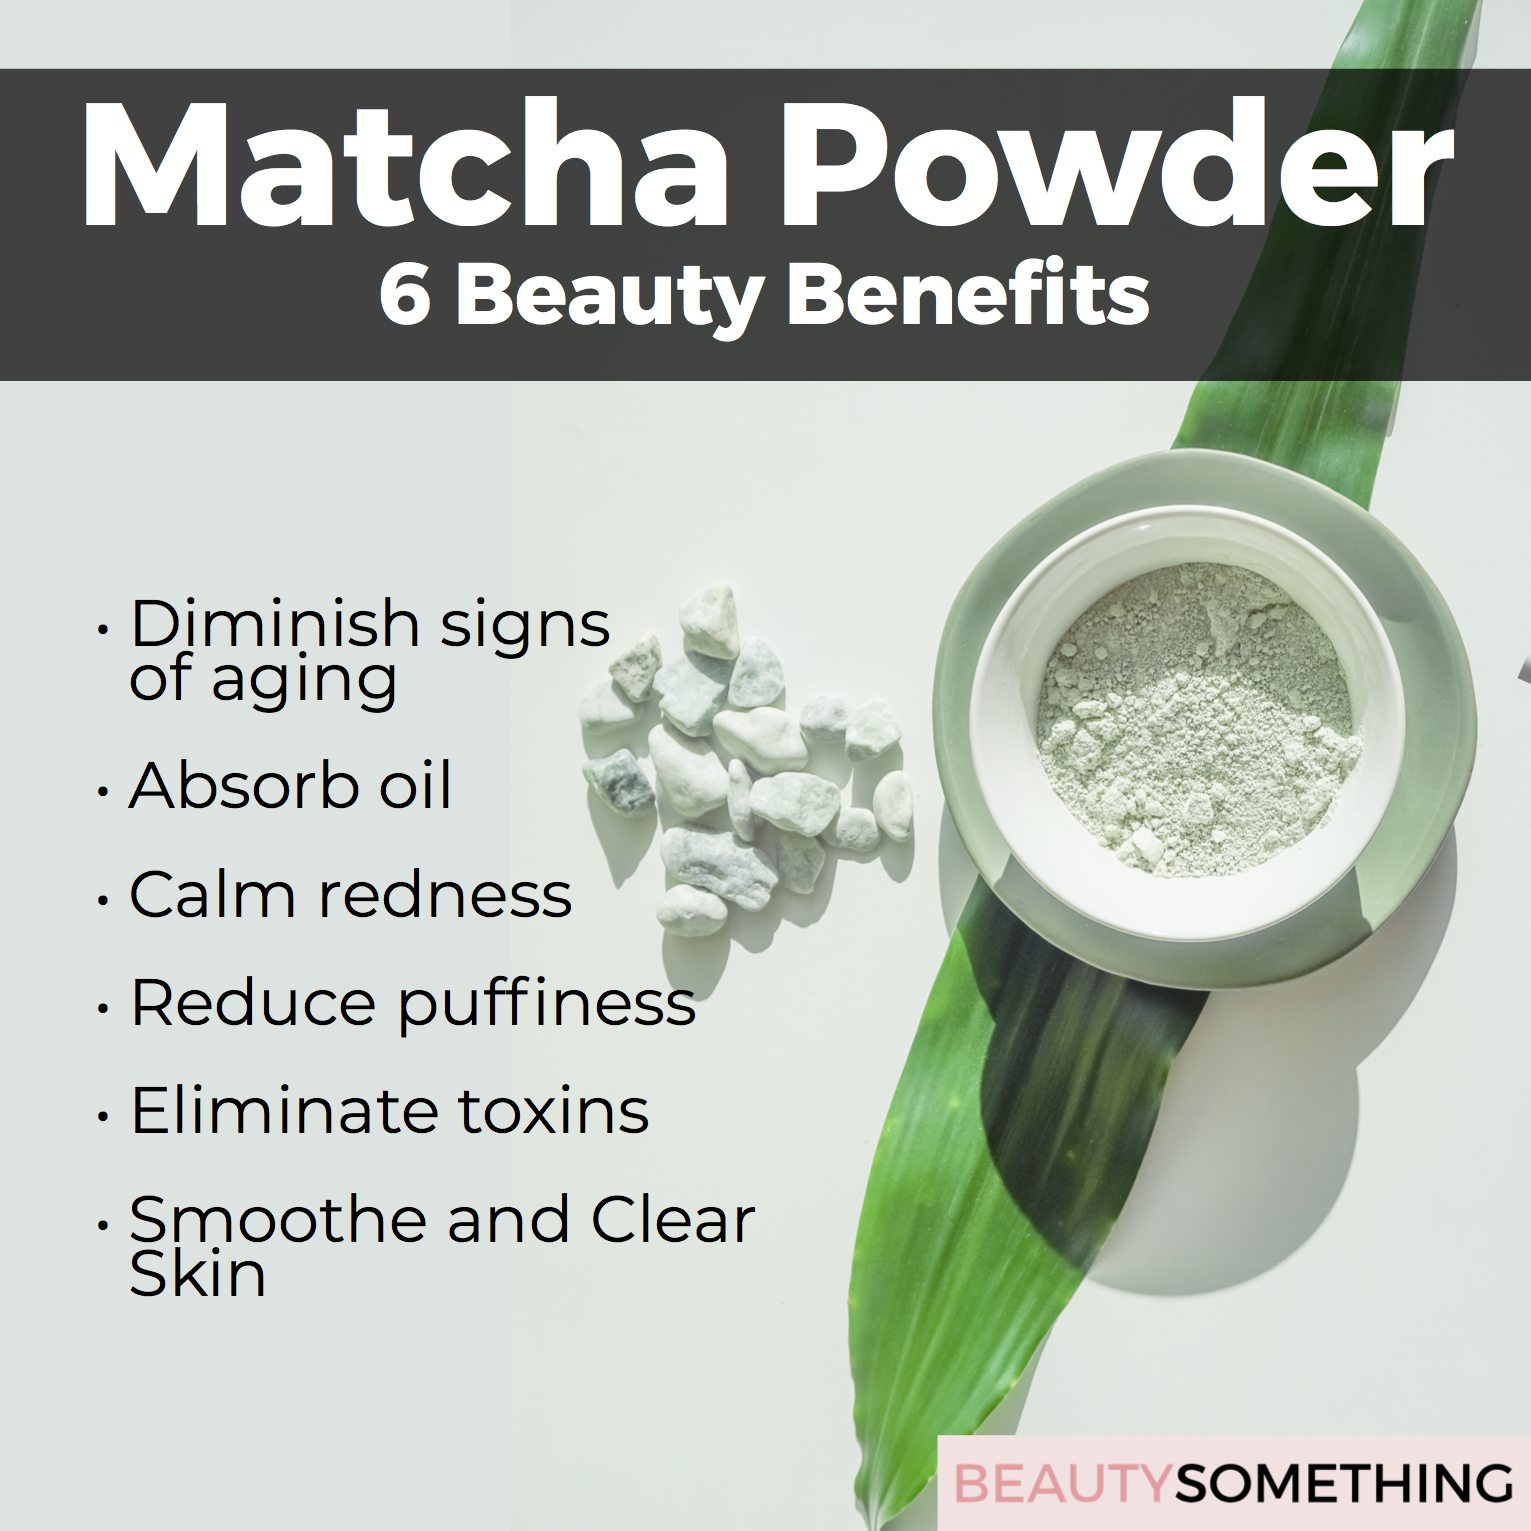 matcha powder - 6 beauty benefits